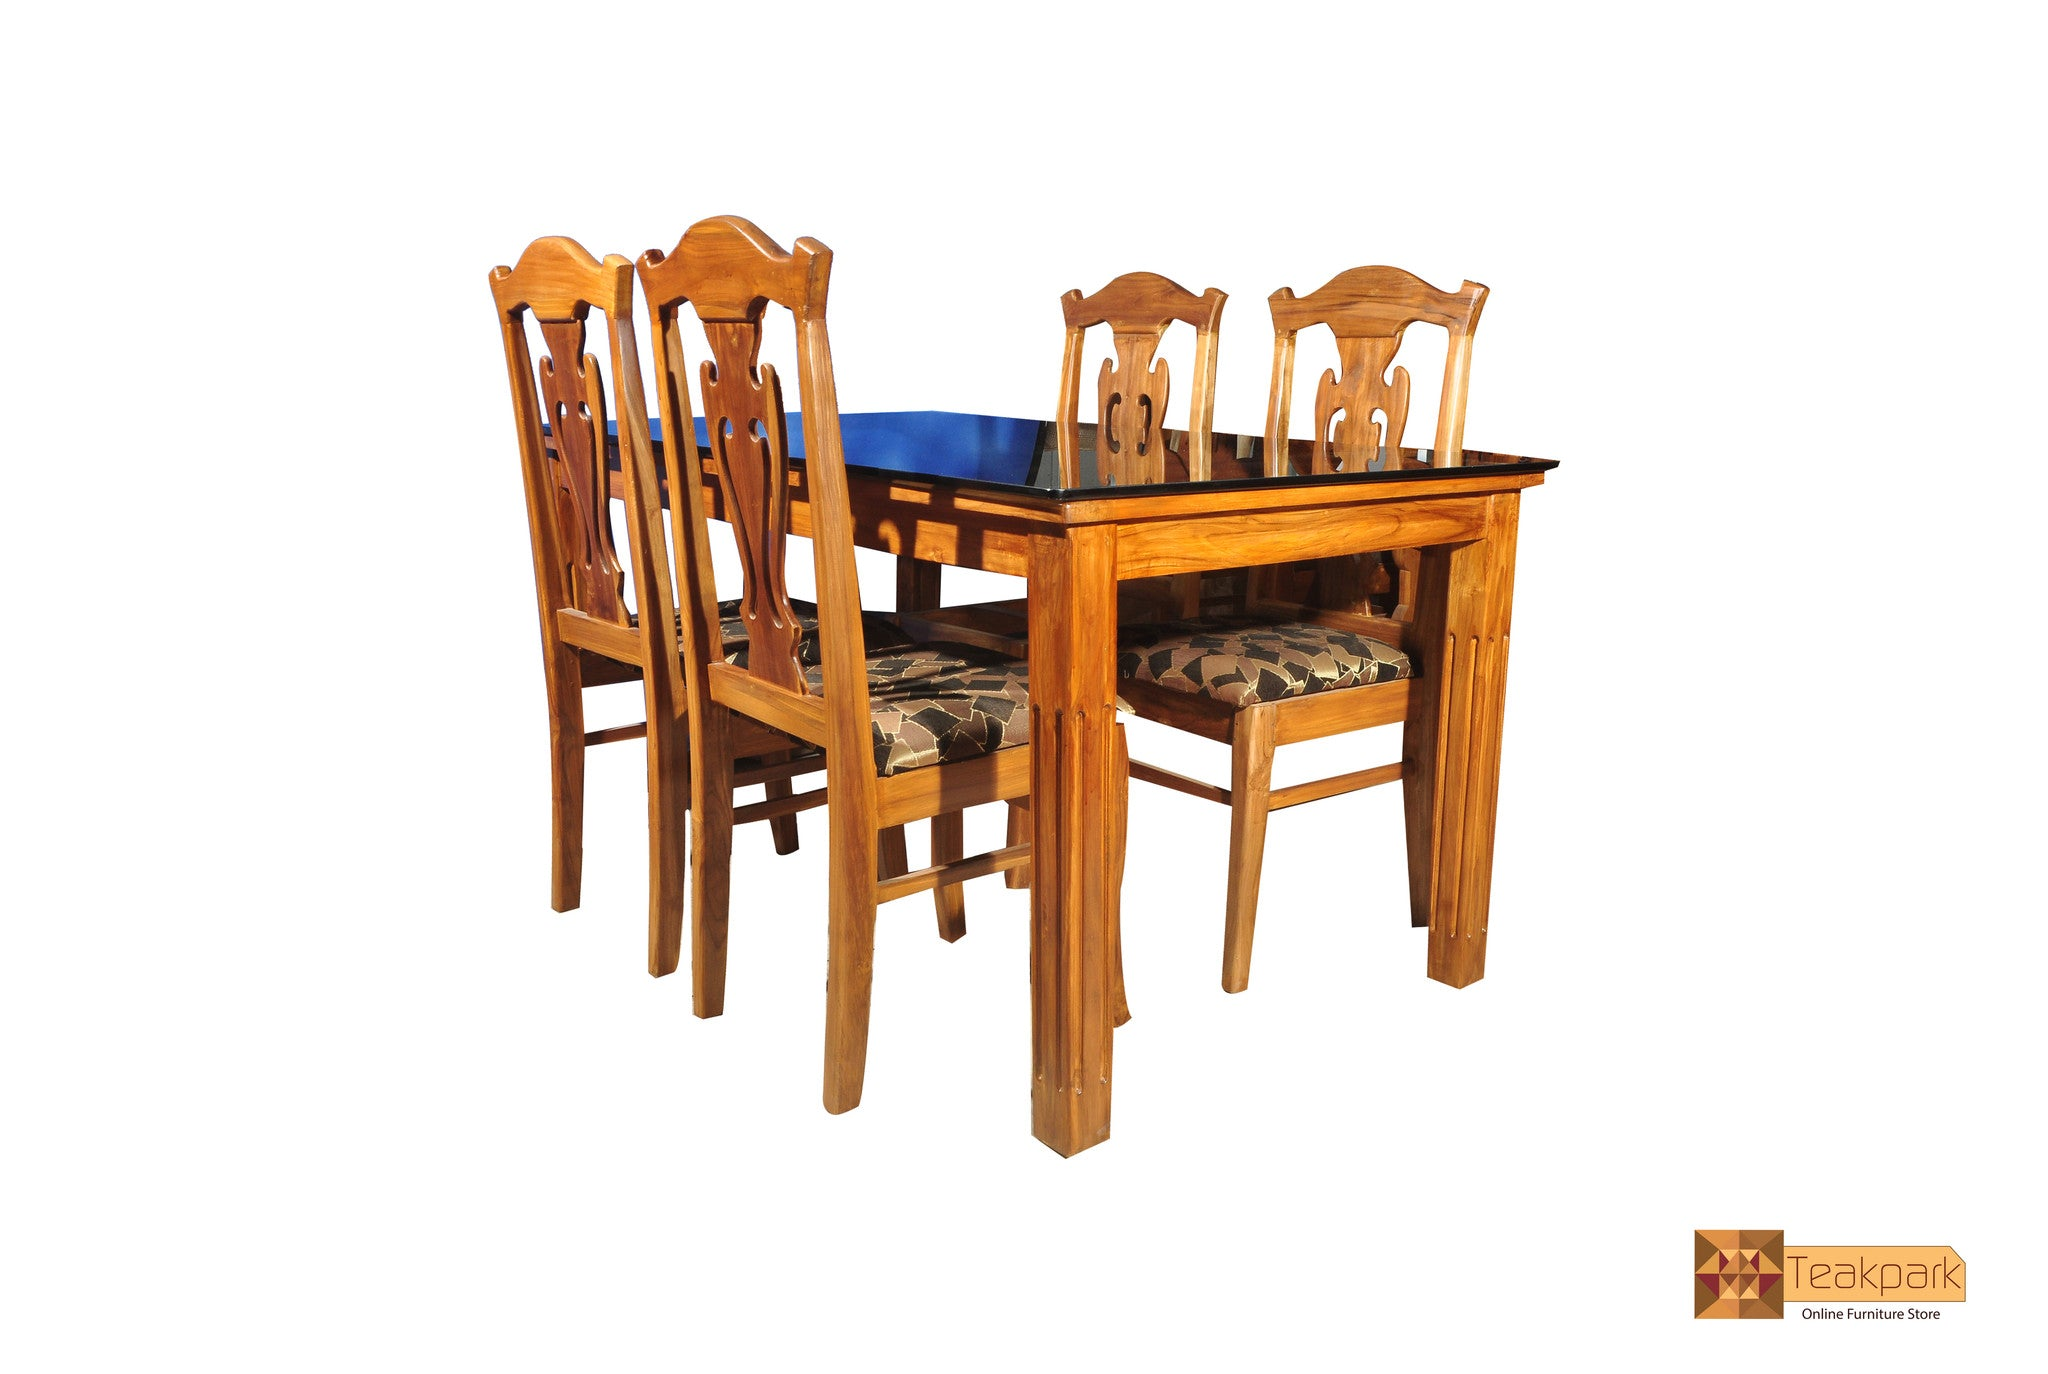 Periyar Teak Wood Dining Set Glass Top Table With Chairs Teakpark